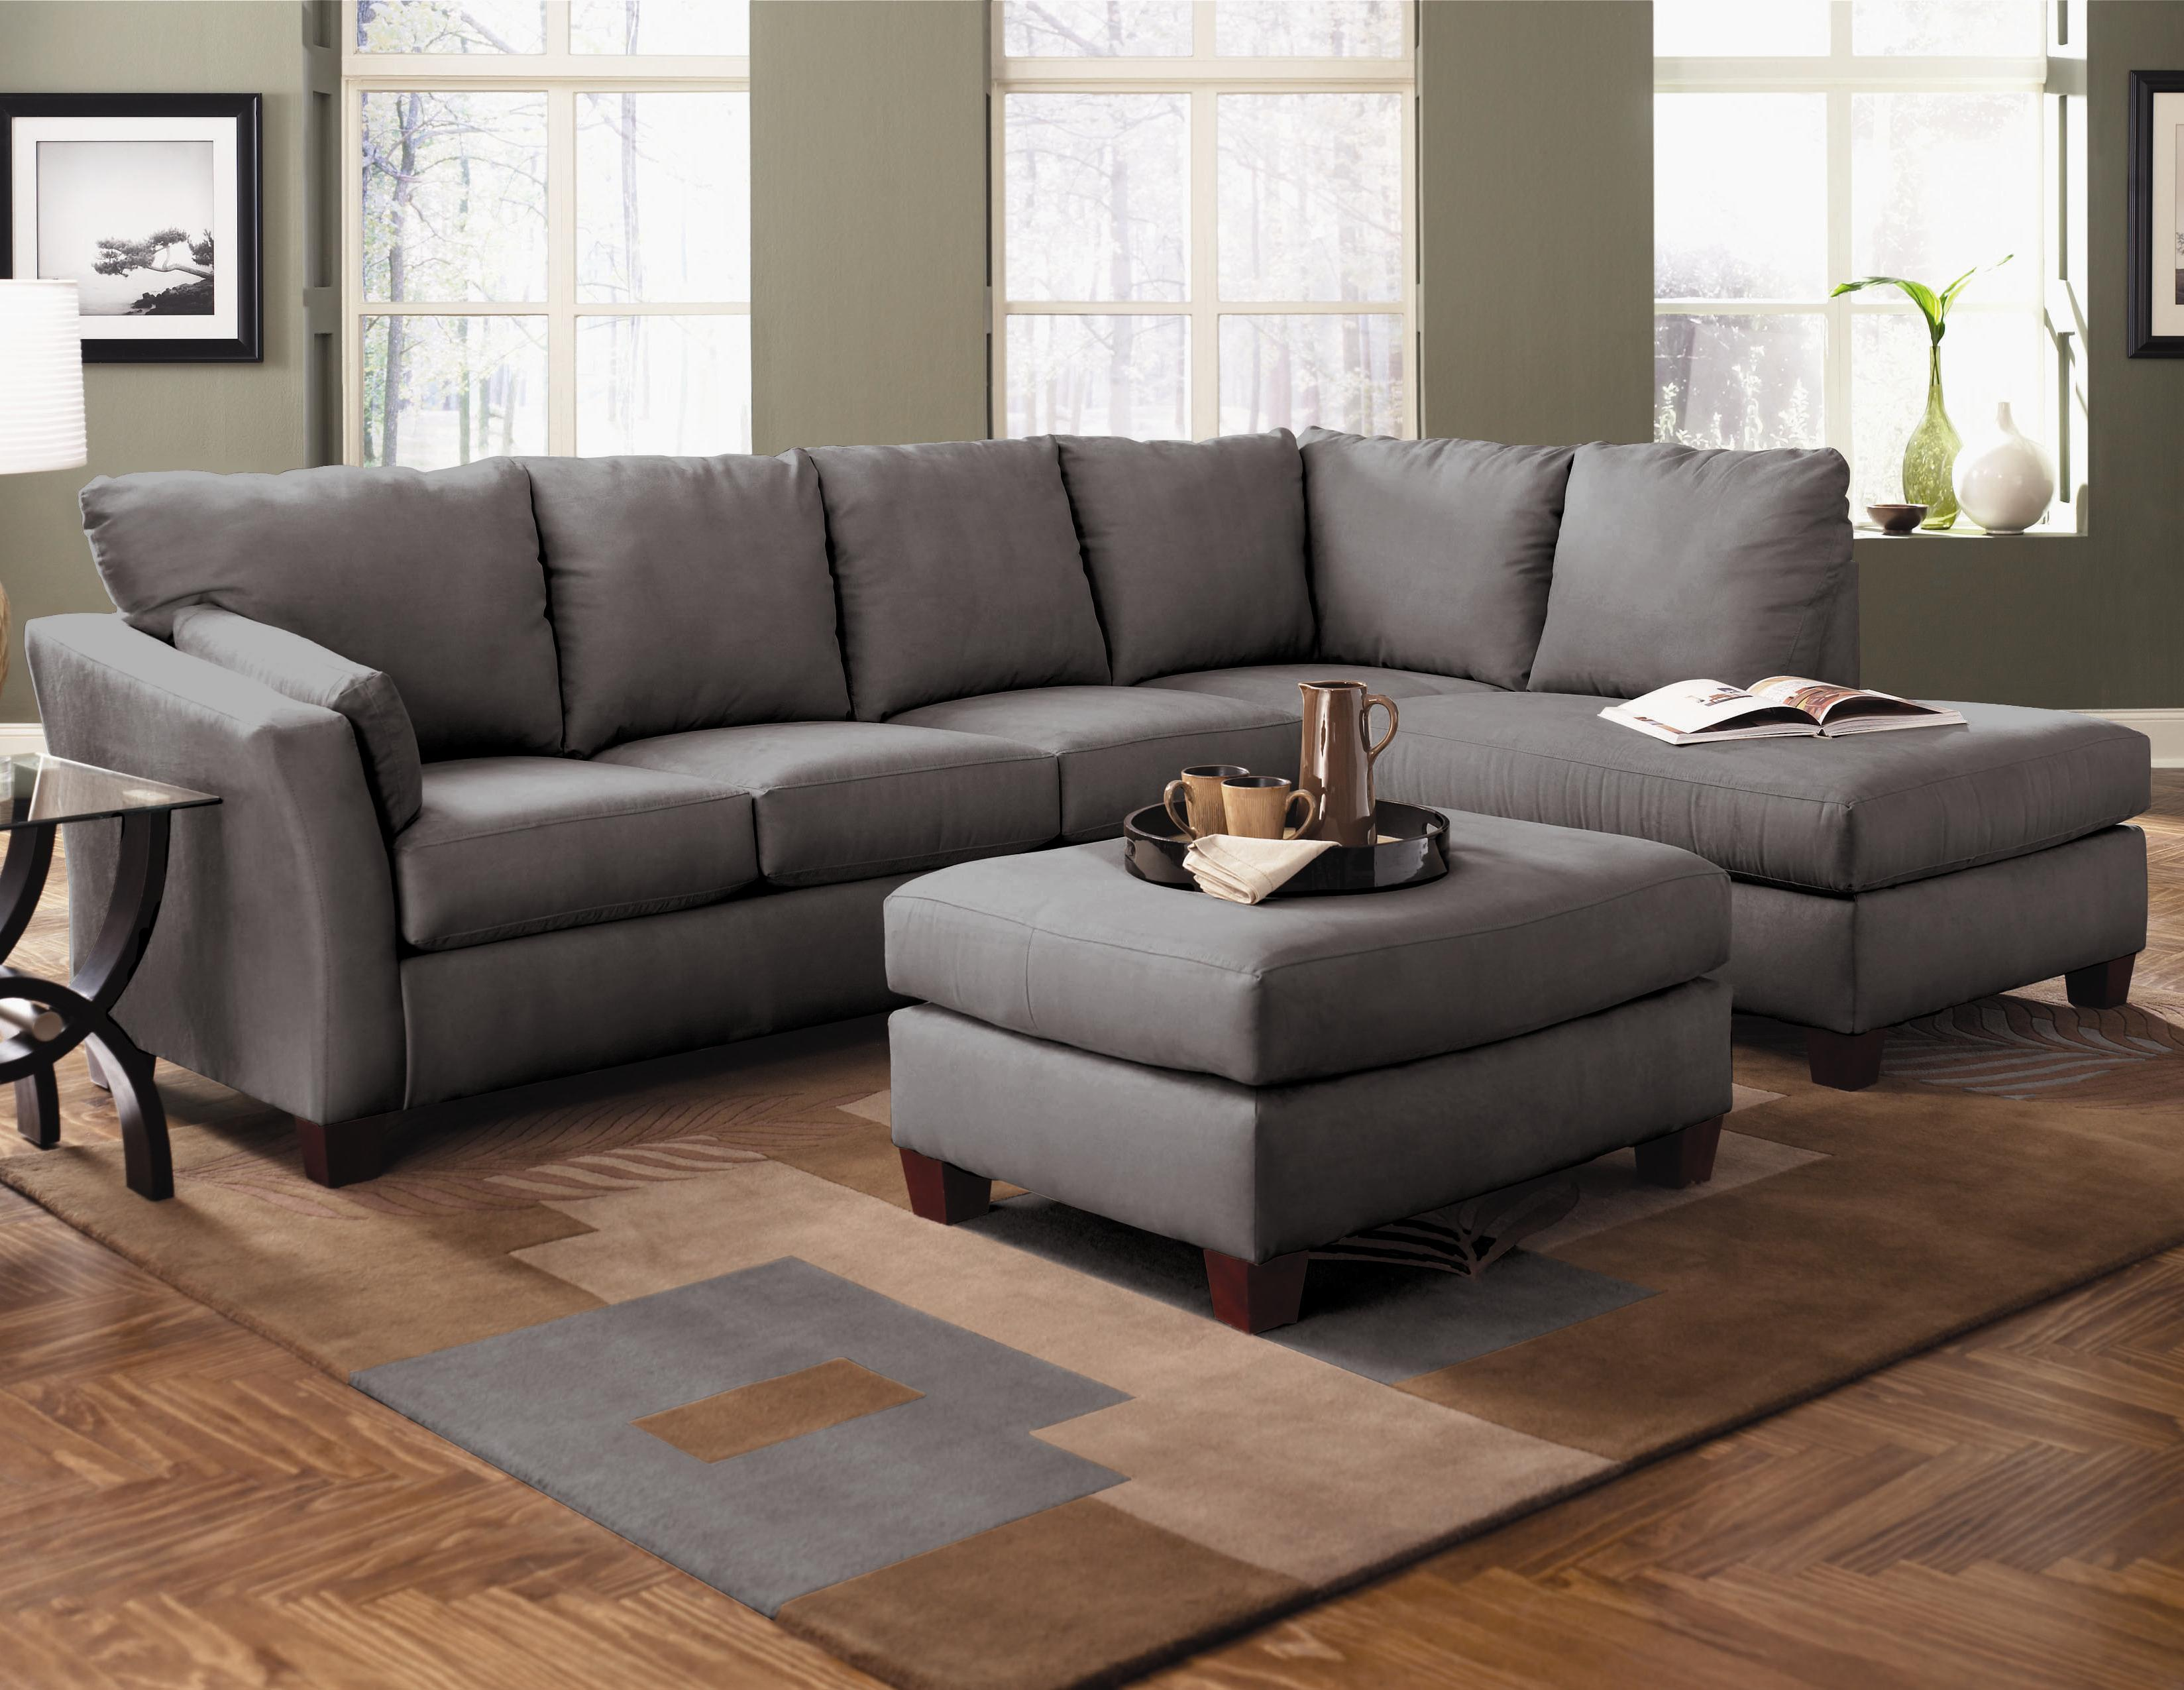 Klaussner Drew Two Piece Sectional Sofa With Chaise - Value City Furniture - Sectional Sofas : klaussner drew sectional - Sectionals, Sofas & Couches